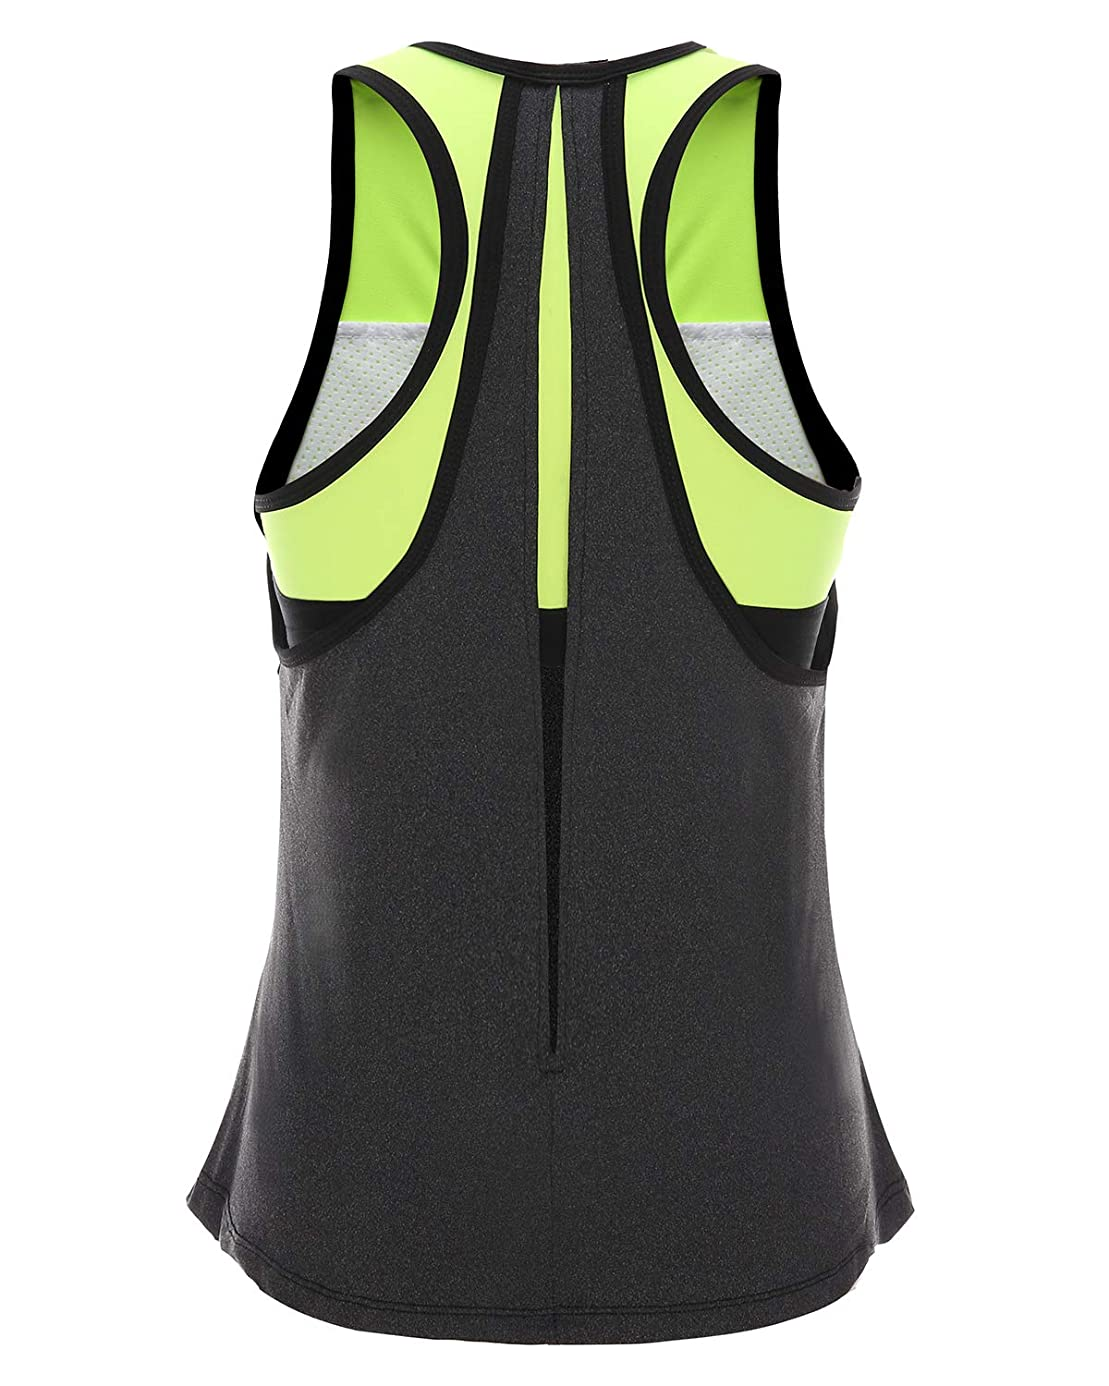 FAFAIR Women Tank Top with Built in Bra Workout Gym Yoga